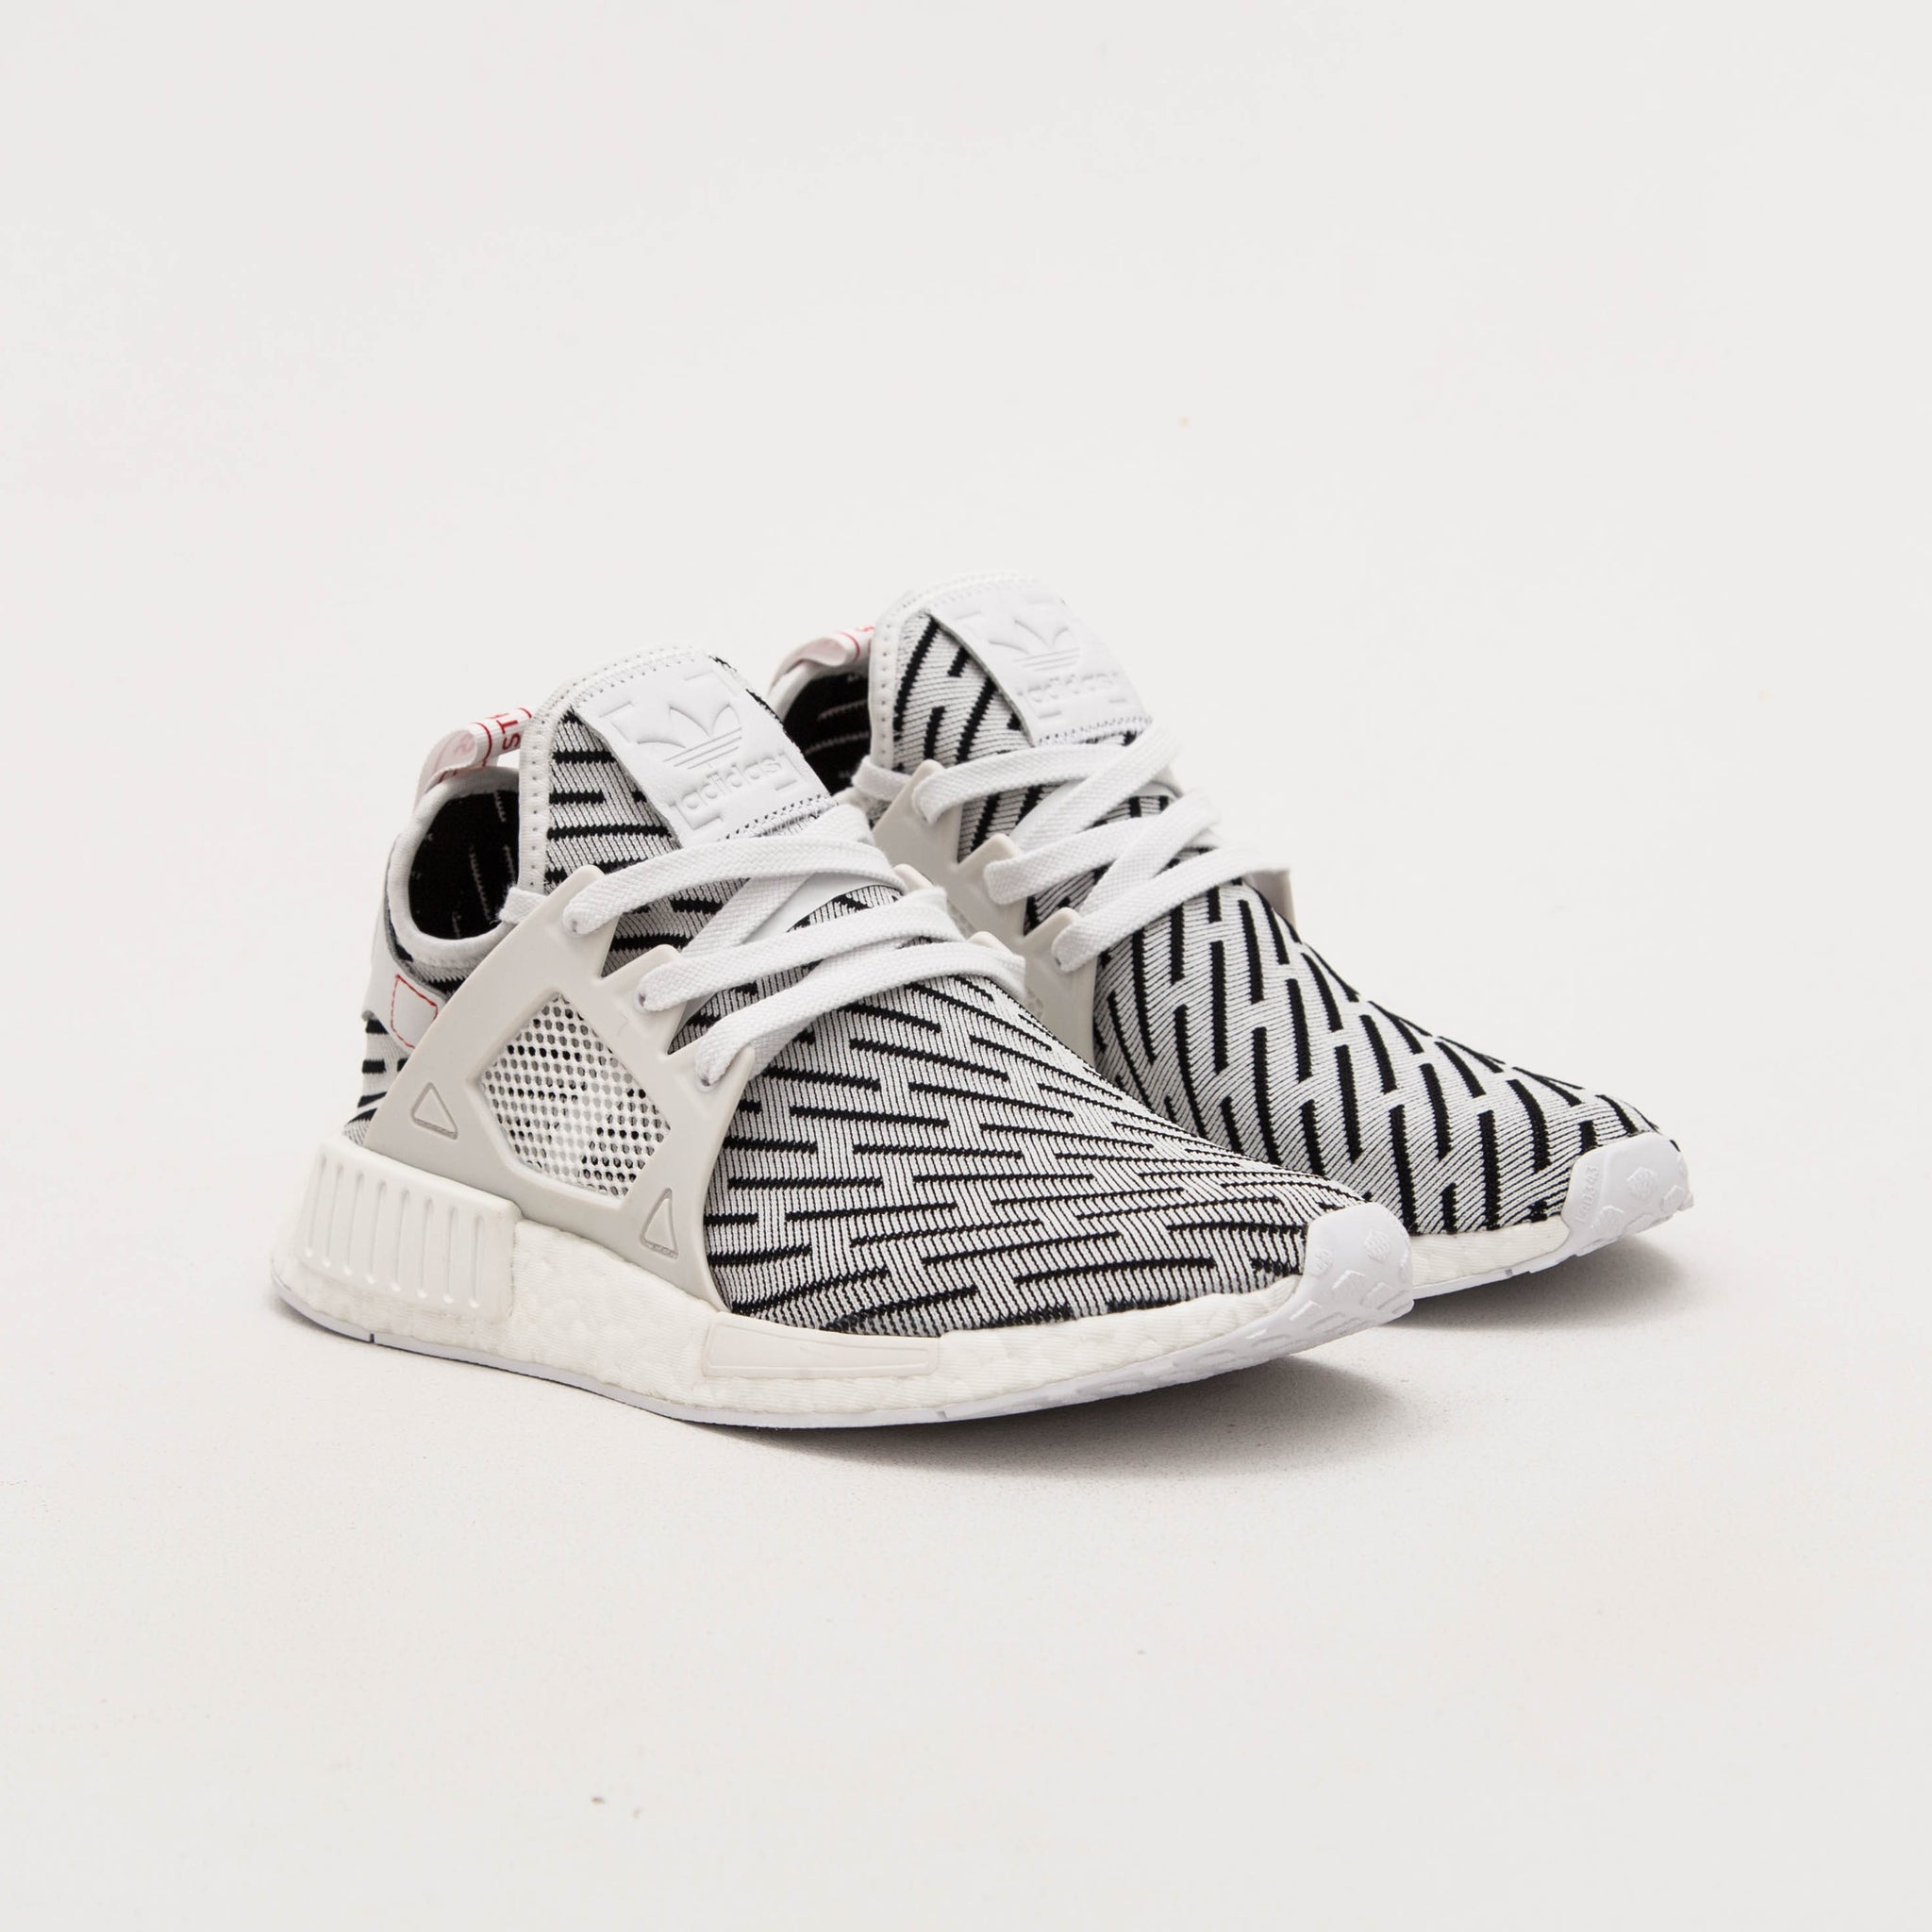 NMD_XR1 PK - Running White Ftw / Running White Ftw / Core Red